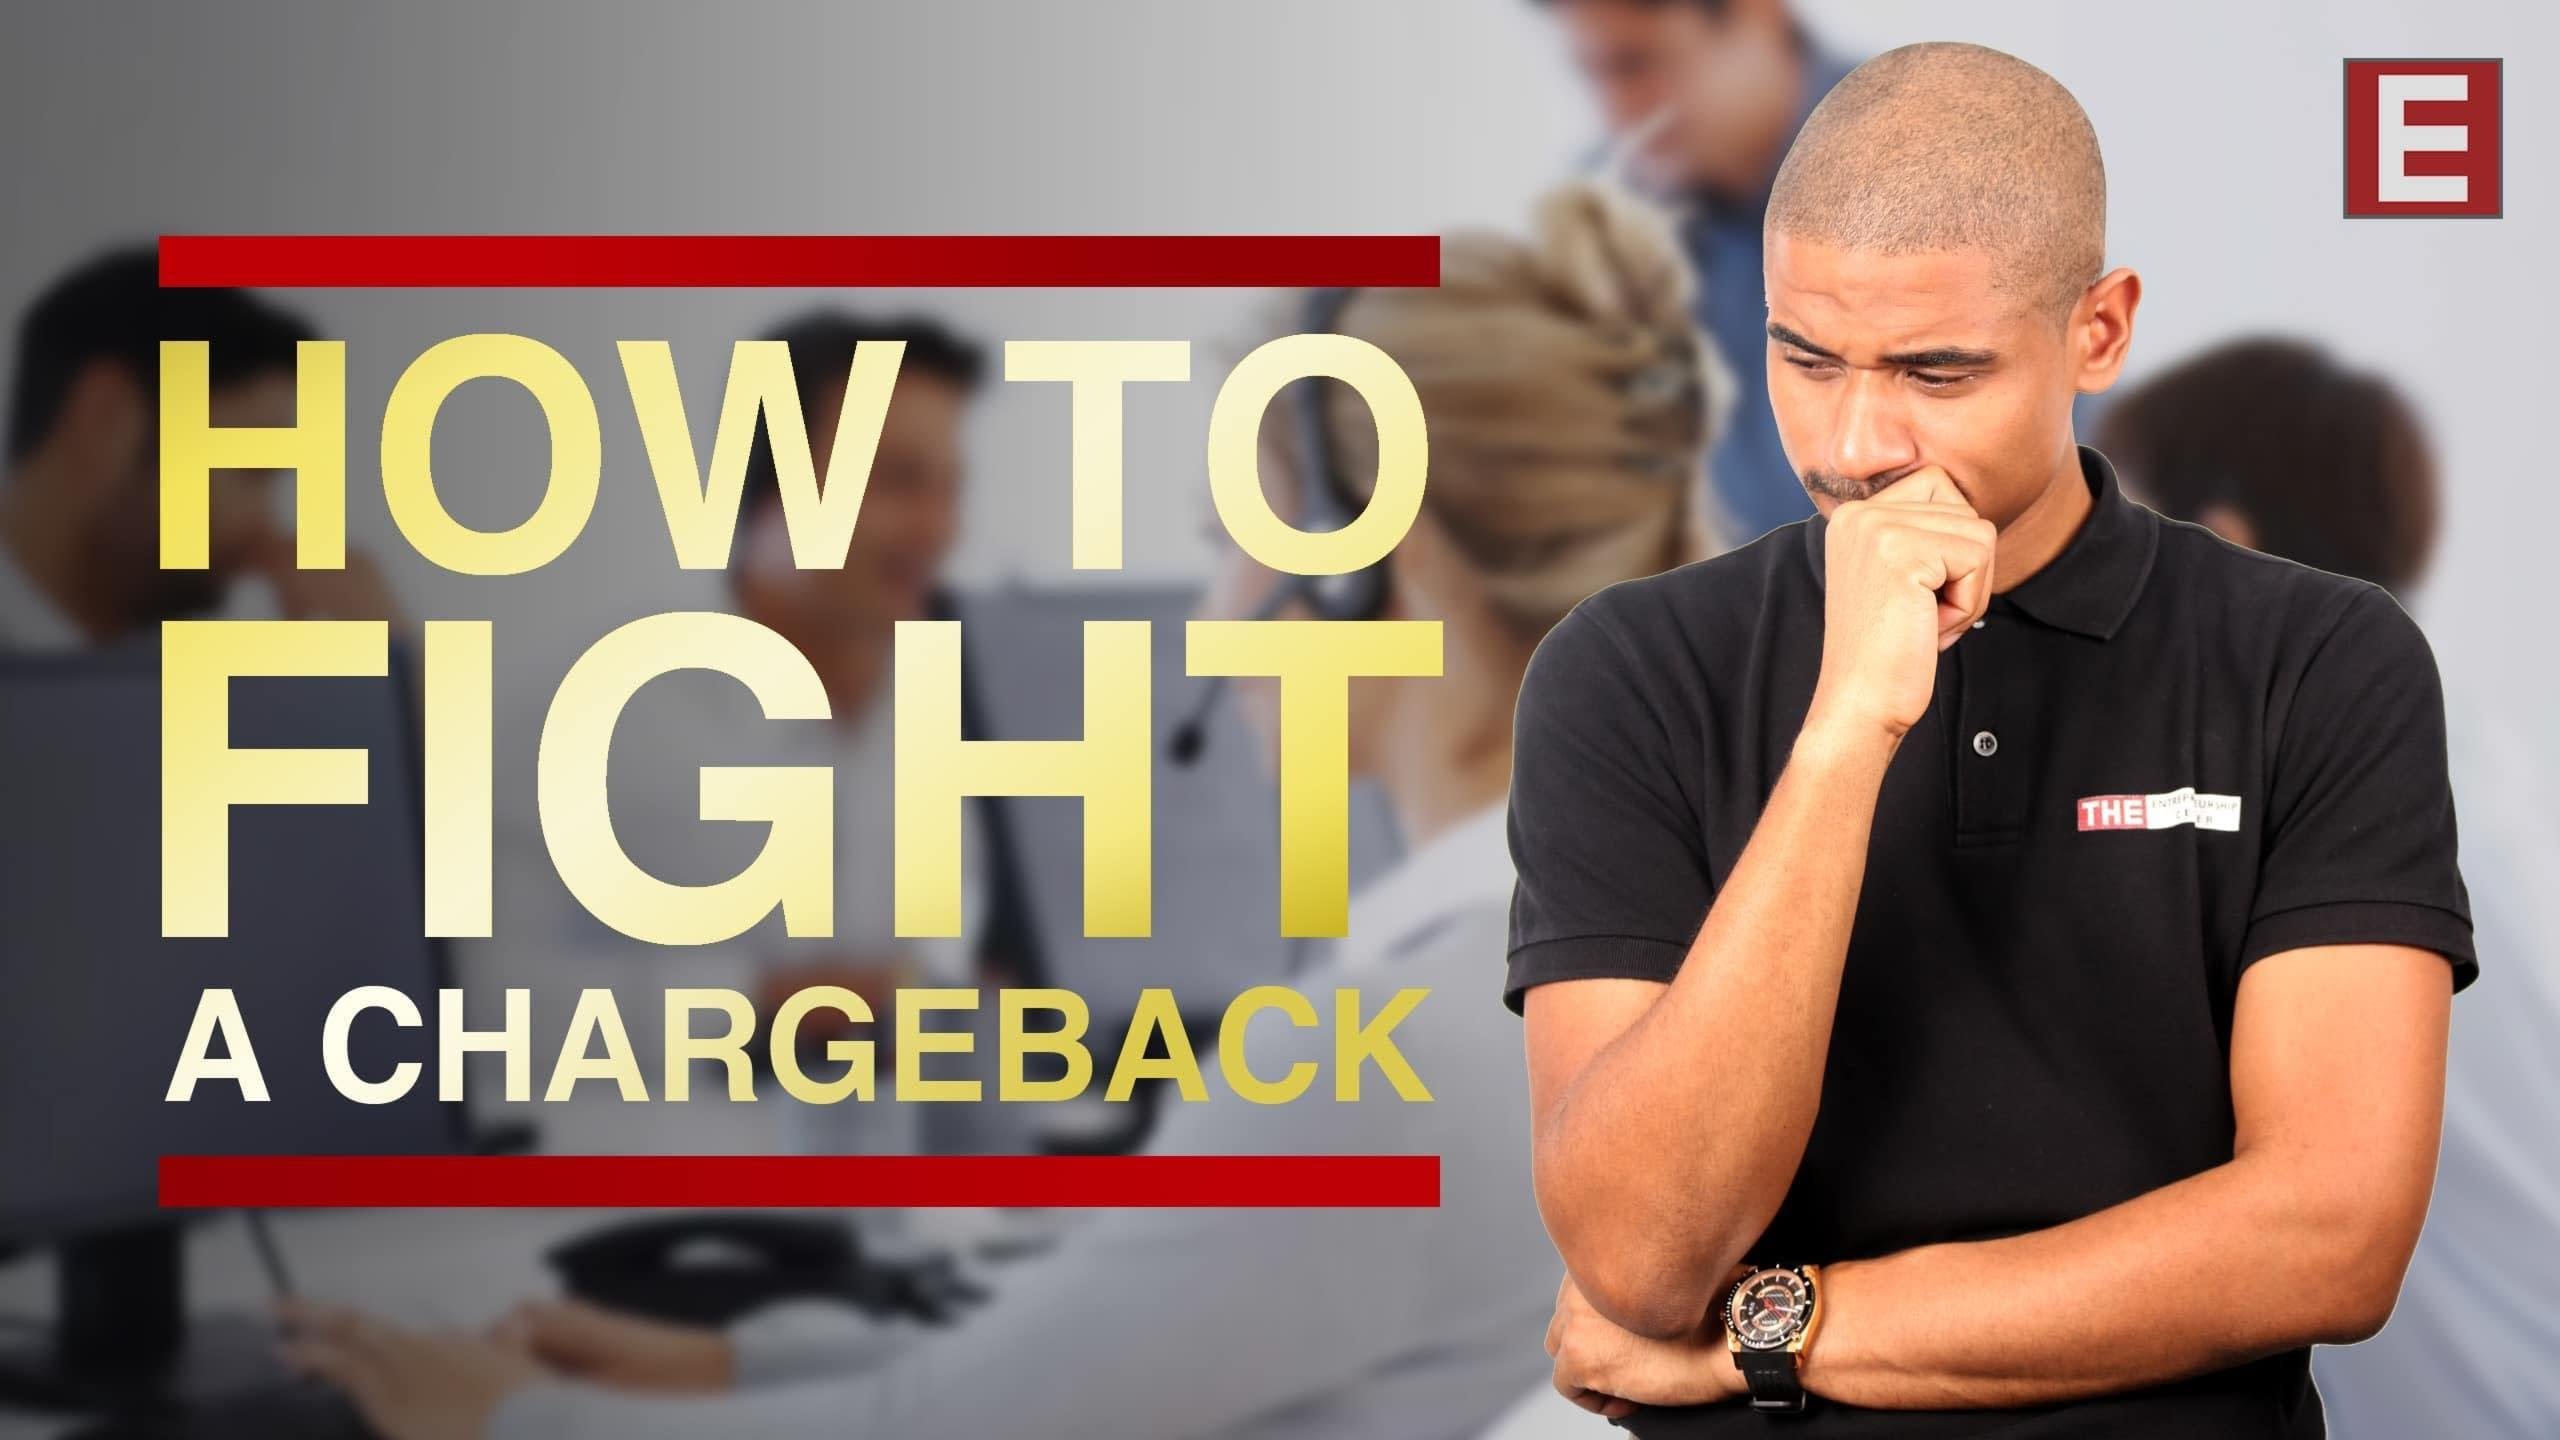 How to fight a chargeback 2